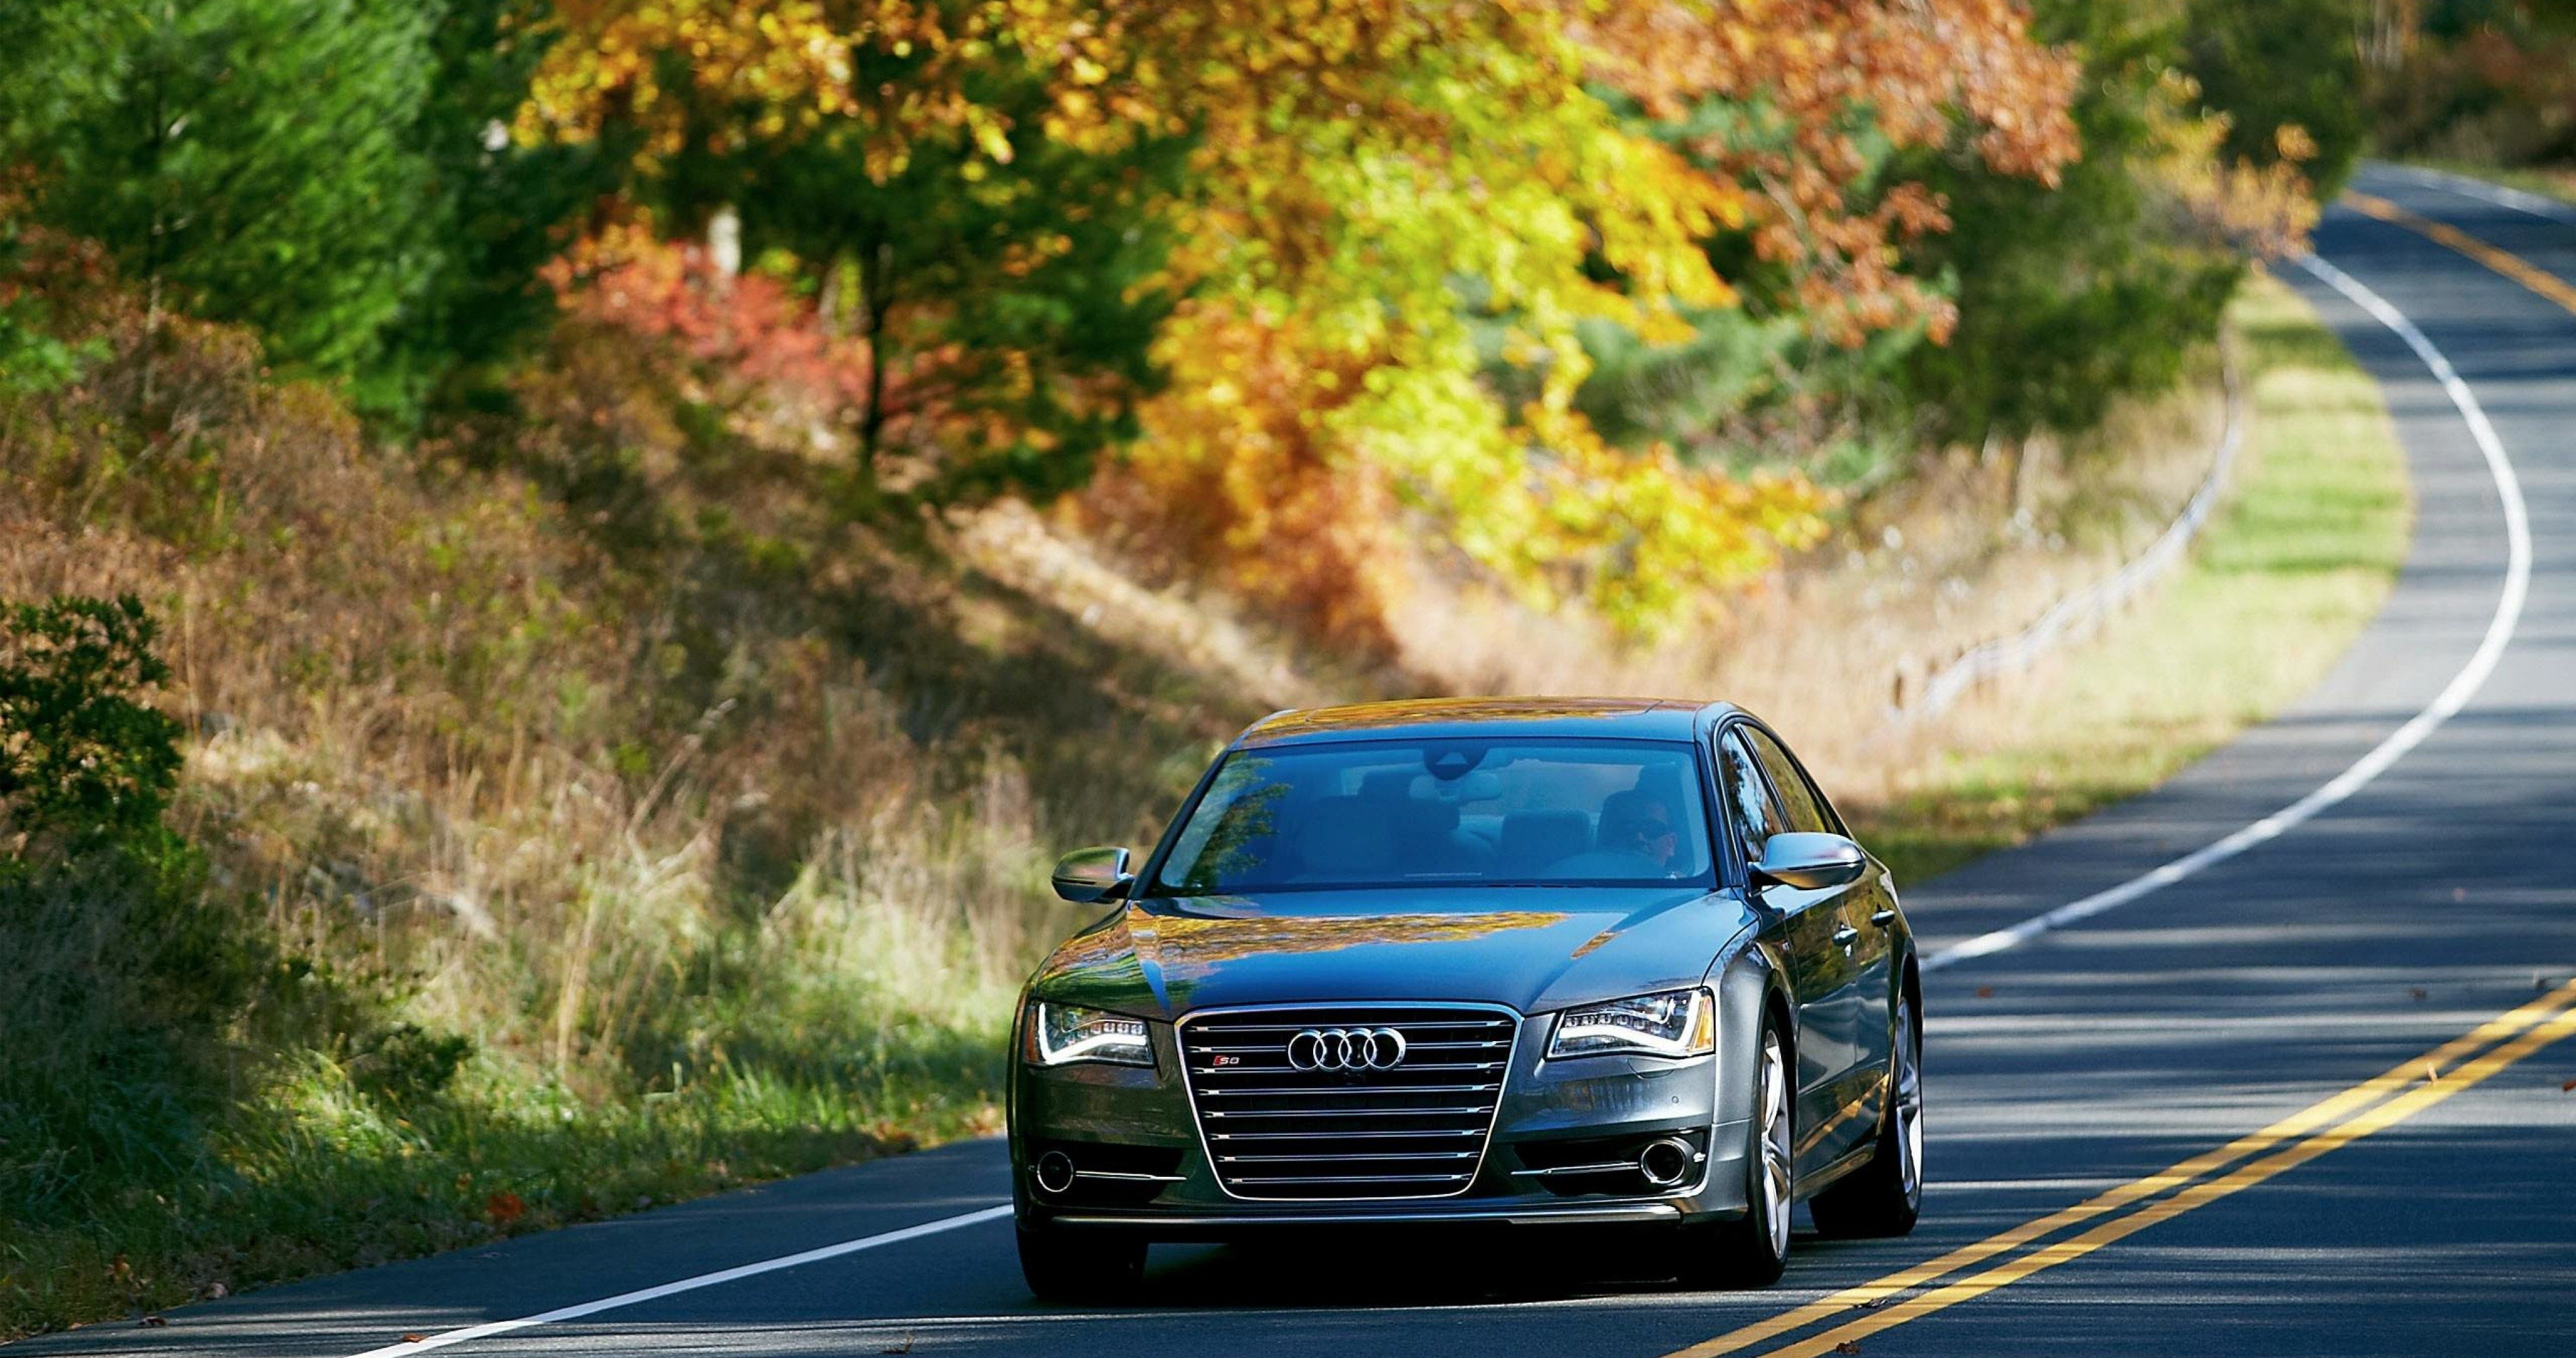 audi s8 car sedan 4k ultra hd wallpaper Hd wallpaper Audi cars 4096x2160